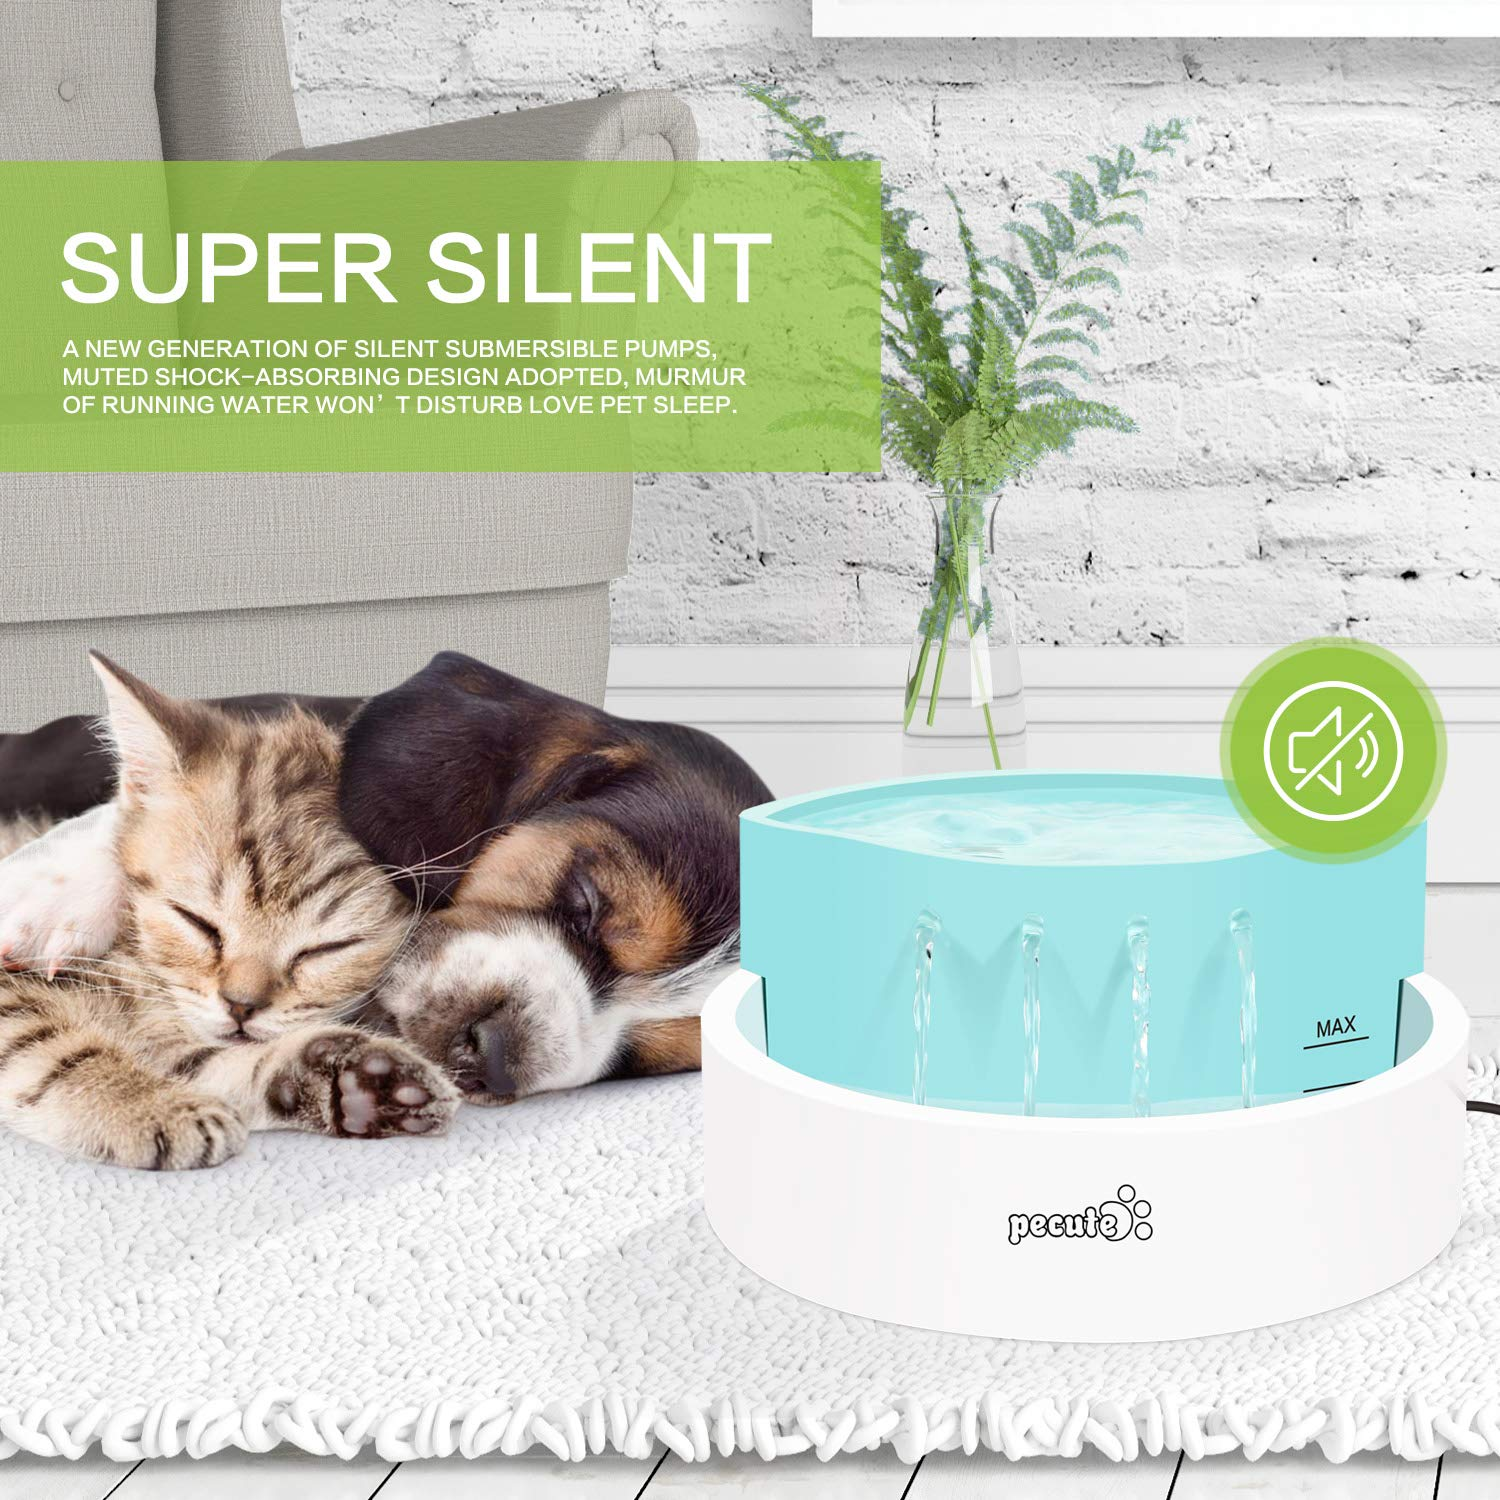 Pecute Cat Water Fountain 1.6L【New Pump】, 45 DB Ultra-Quiet Pet Drinking Fountain Automatic Circulation USB Charged,Waterfall Design Encourage Cats & Small Dogs to Drink More